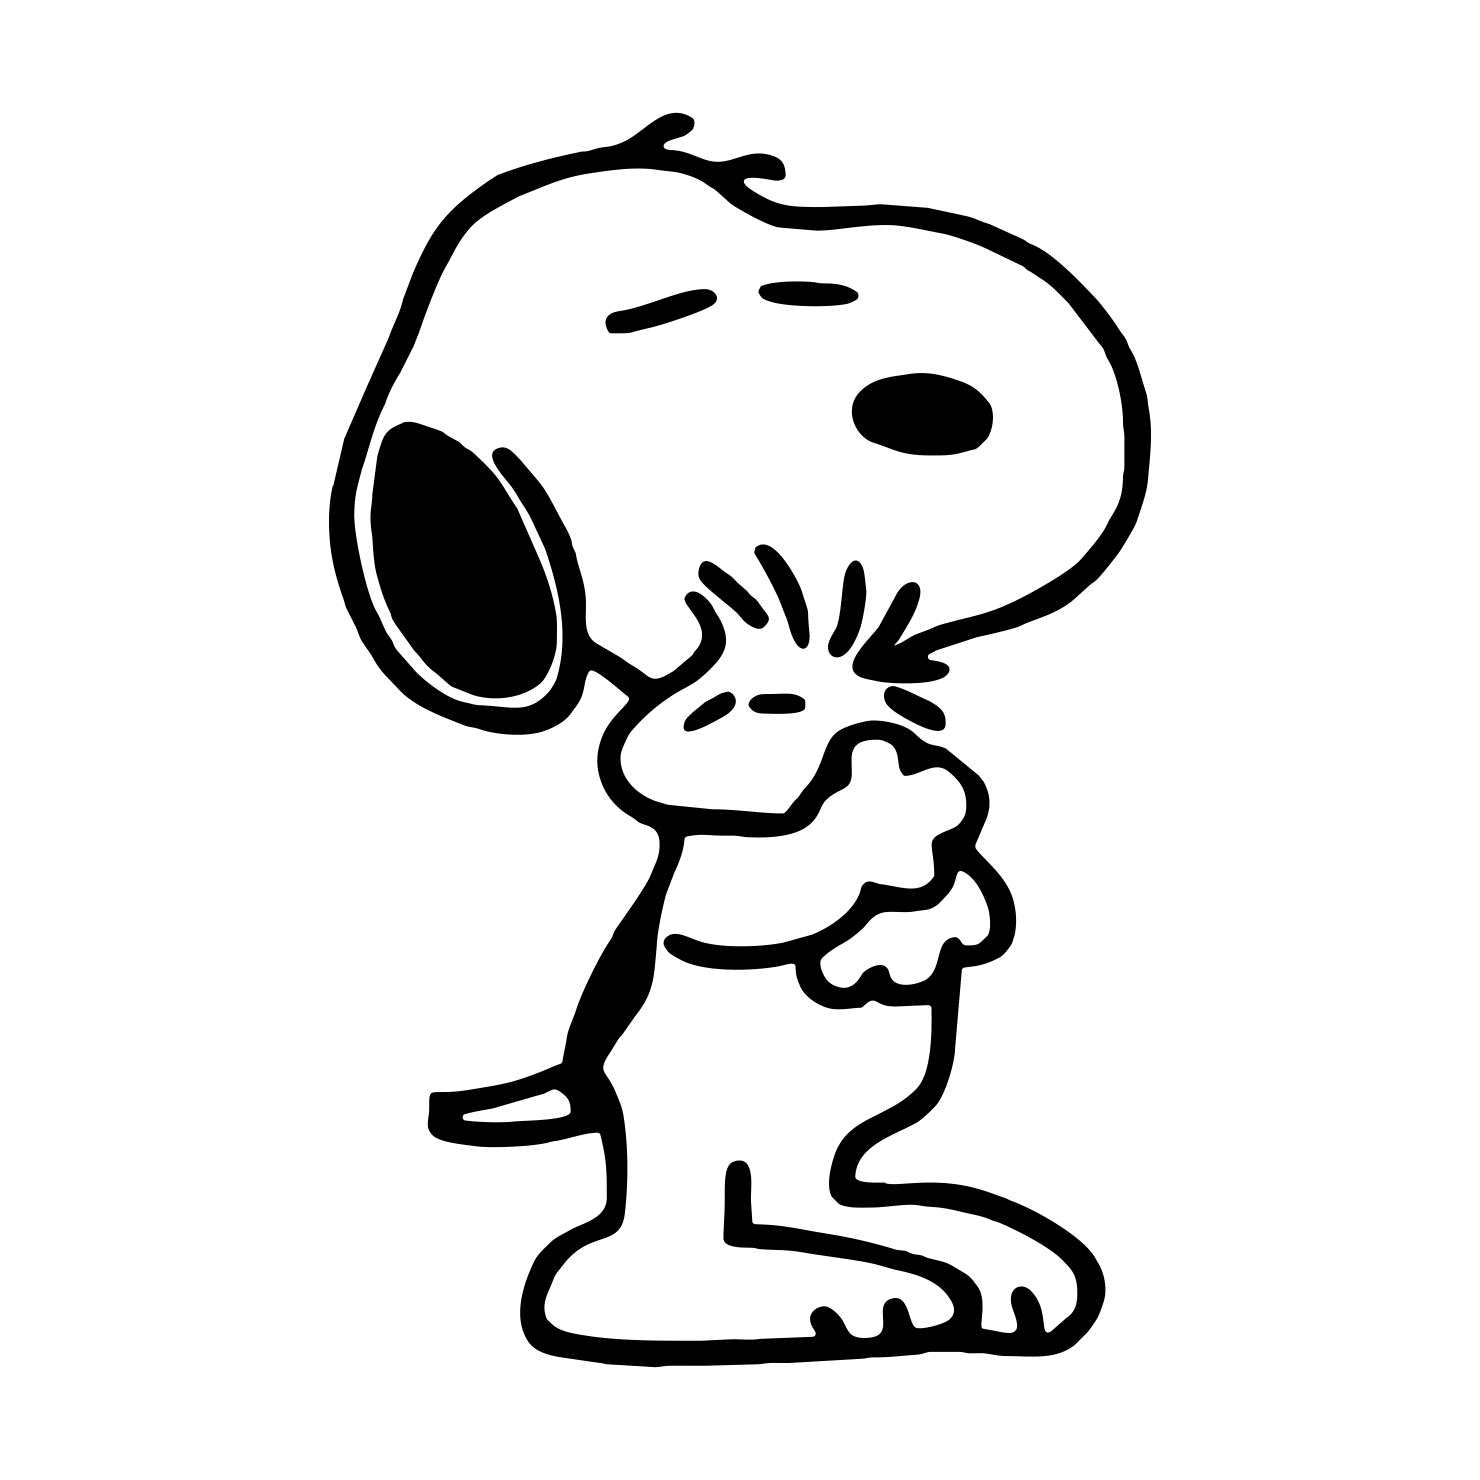 Snoopy Hugging Woodstock Graphics Svg Dxf Eps Cdr Ai